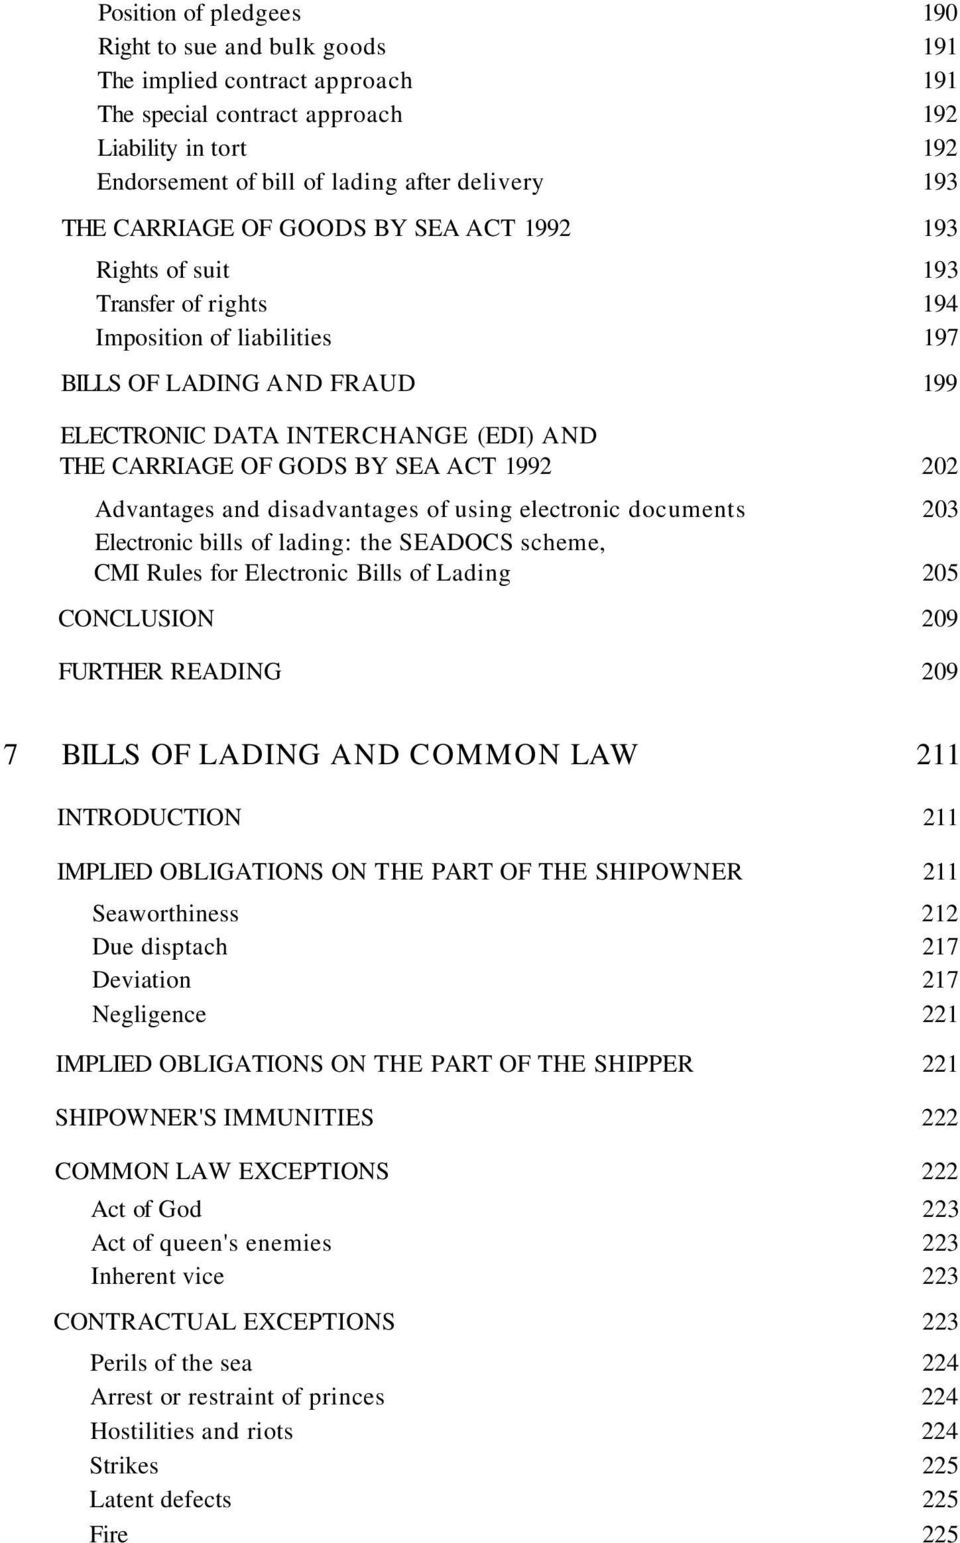 BY SEA ACT 1992 202 Advantages and disadvantages of using electronic documents 203 Electronic bills of lading: the SEADOCS scheme, CMI Rules for Electronic Bills of Lading 205 CONCLUSION 209 FURTHER